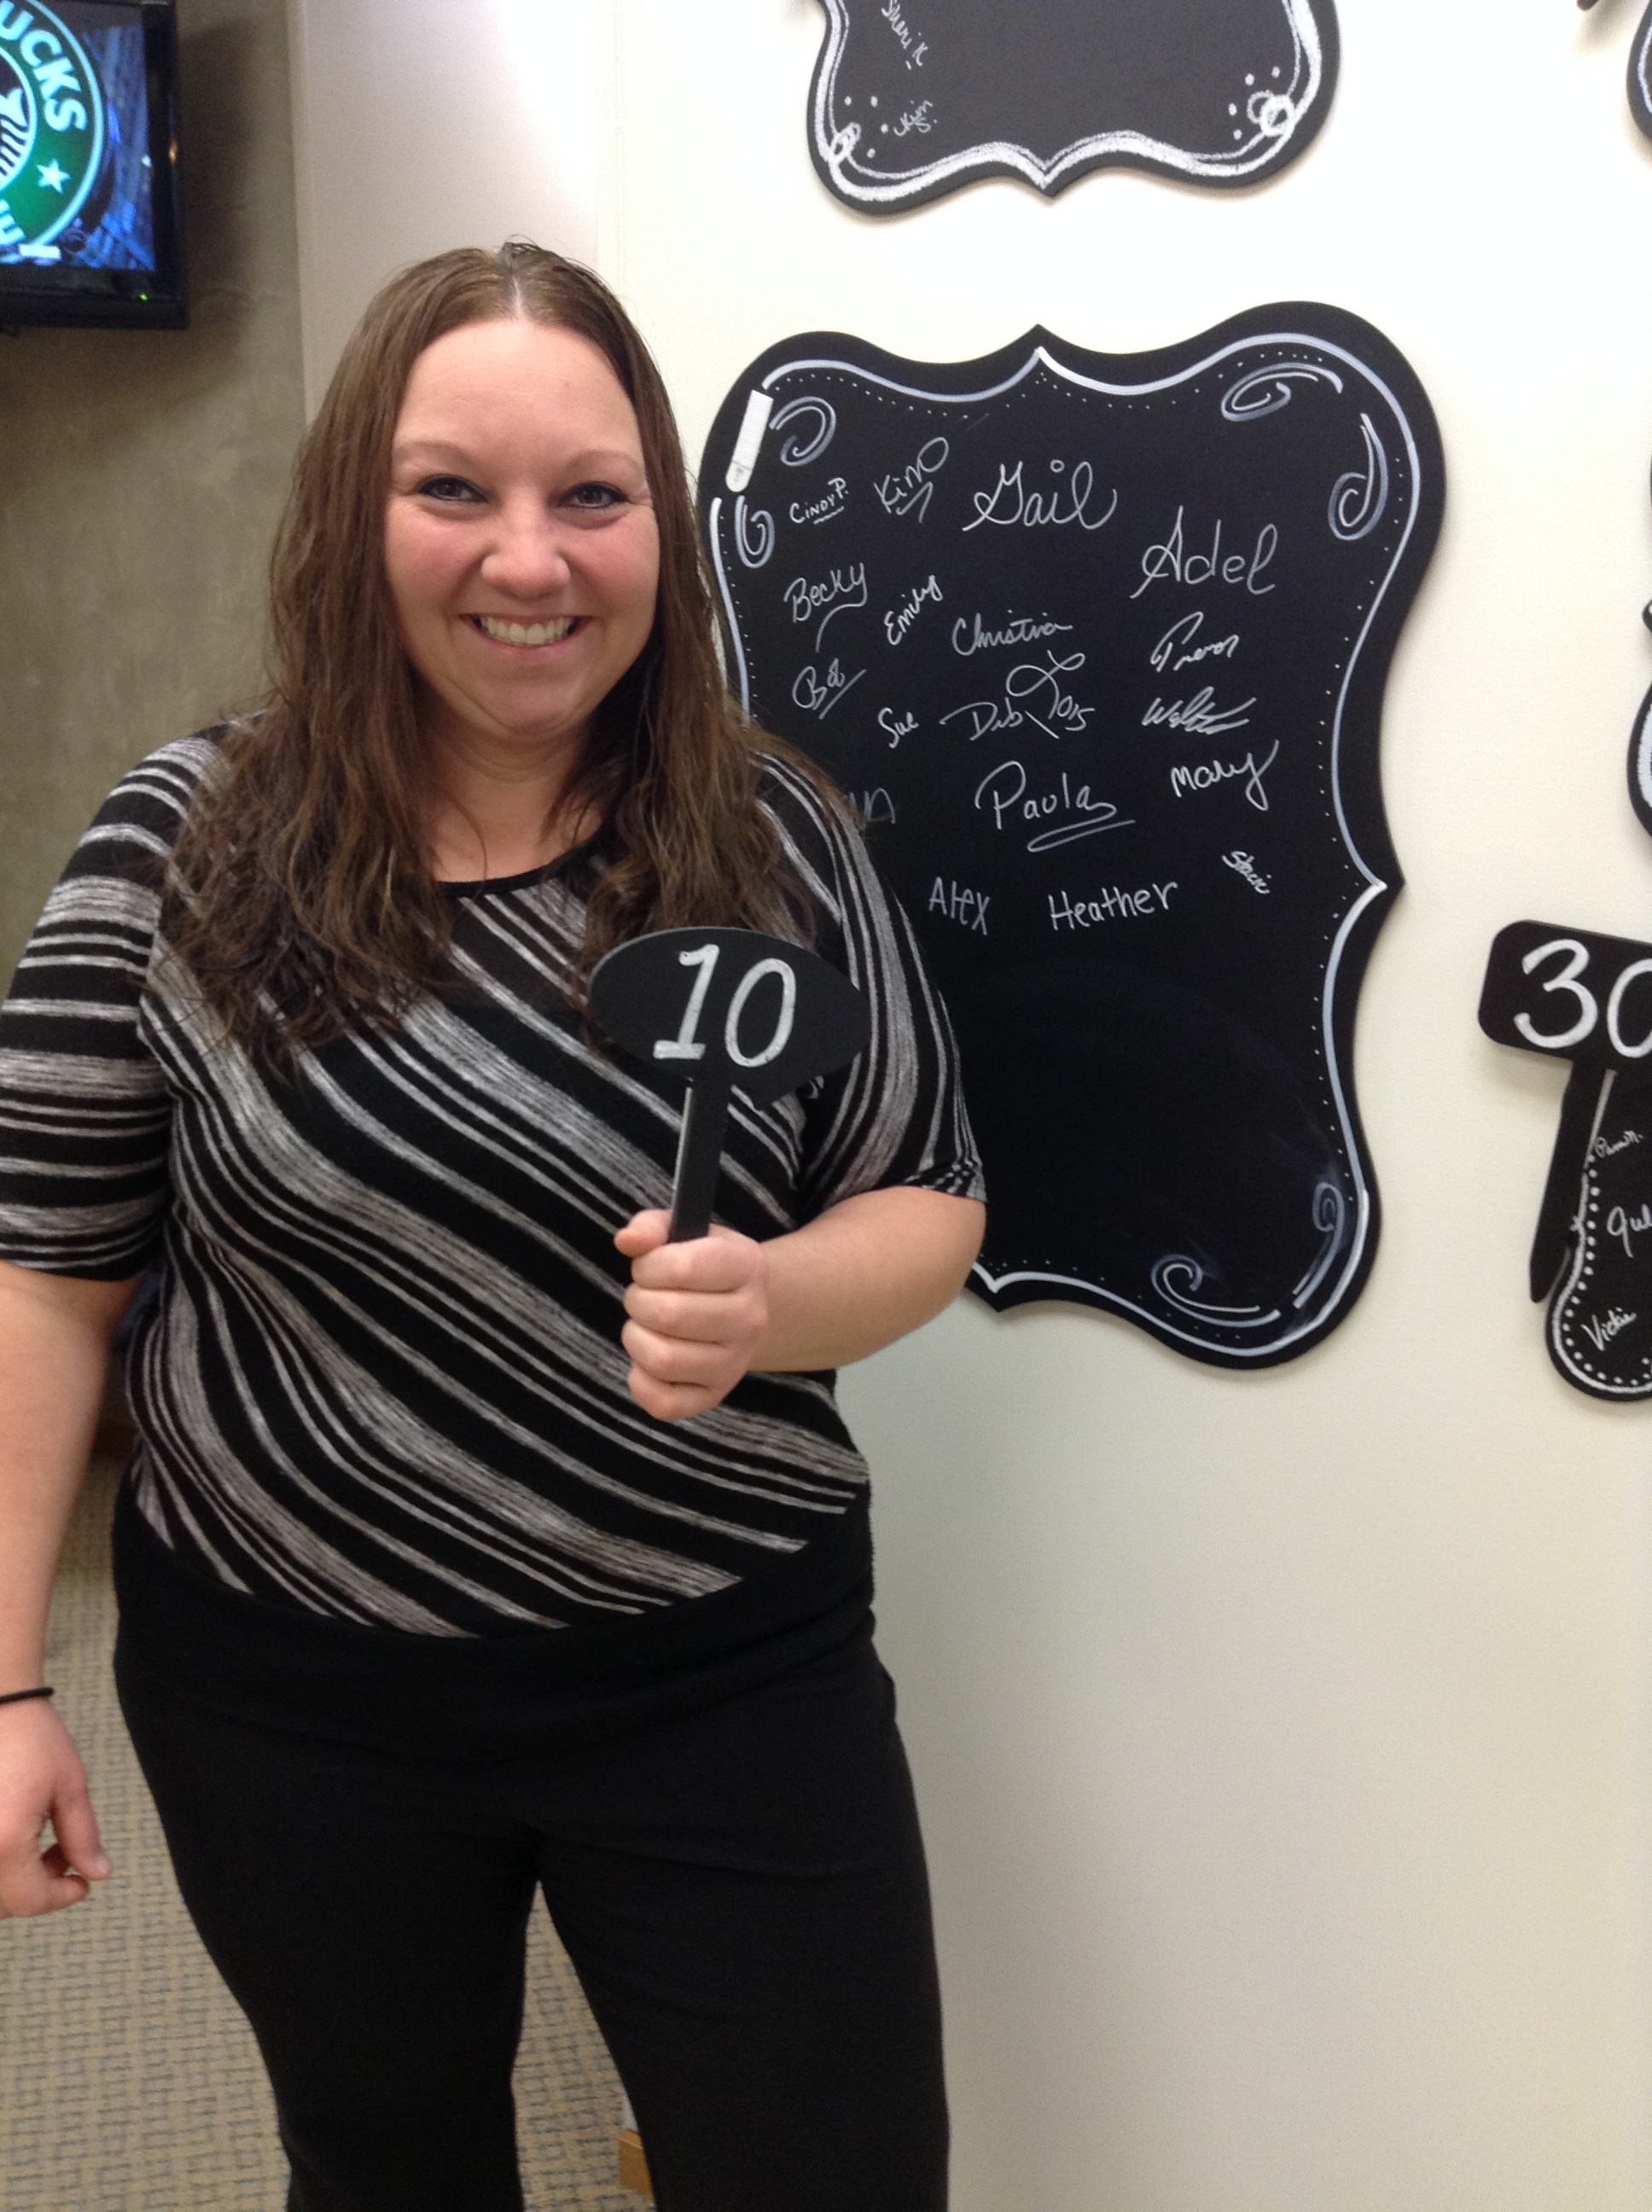 Heather S client of nu you down 10 pounds in her transformation